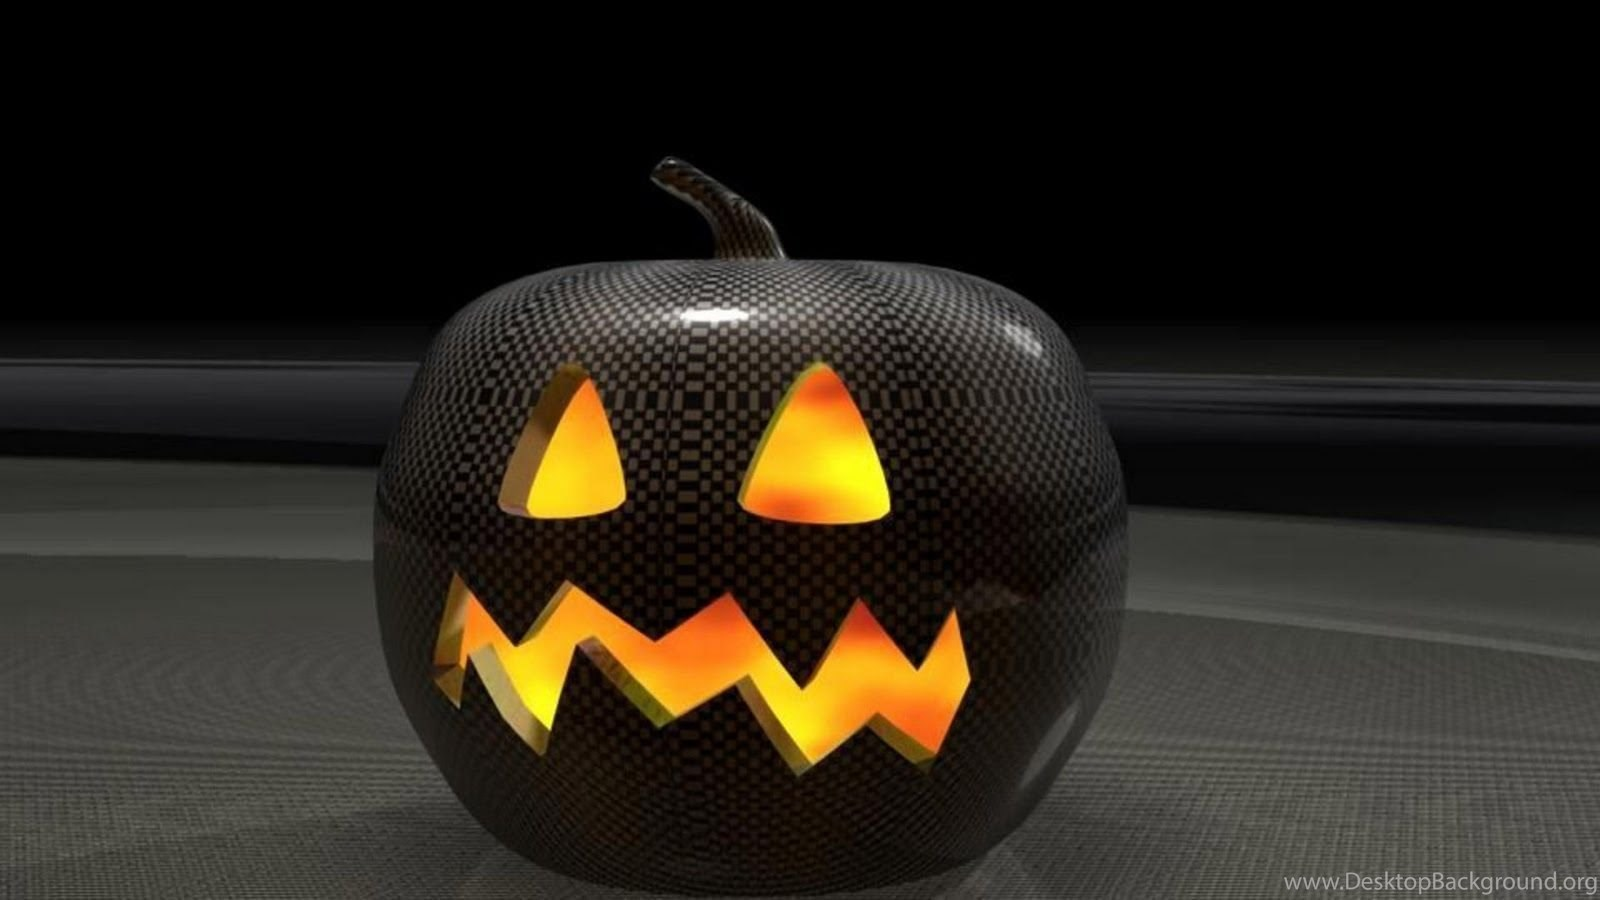 Black And White Halloween Pictures Wallpapers Hd Fine Desktop Background